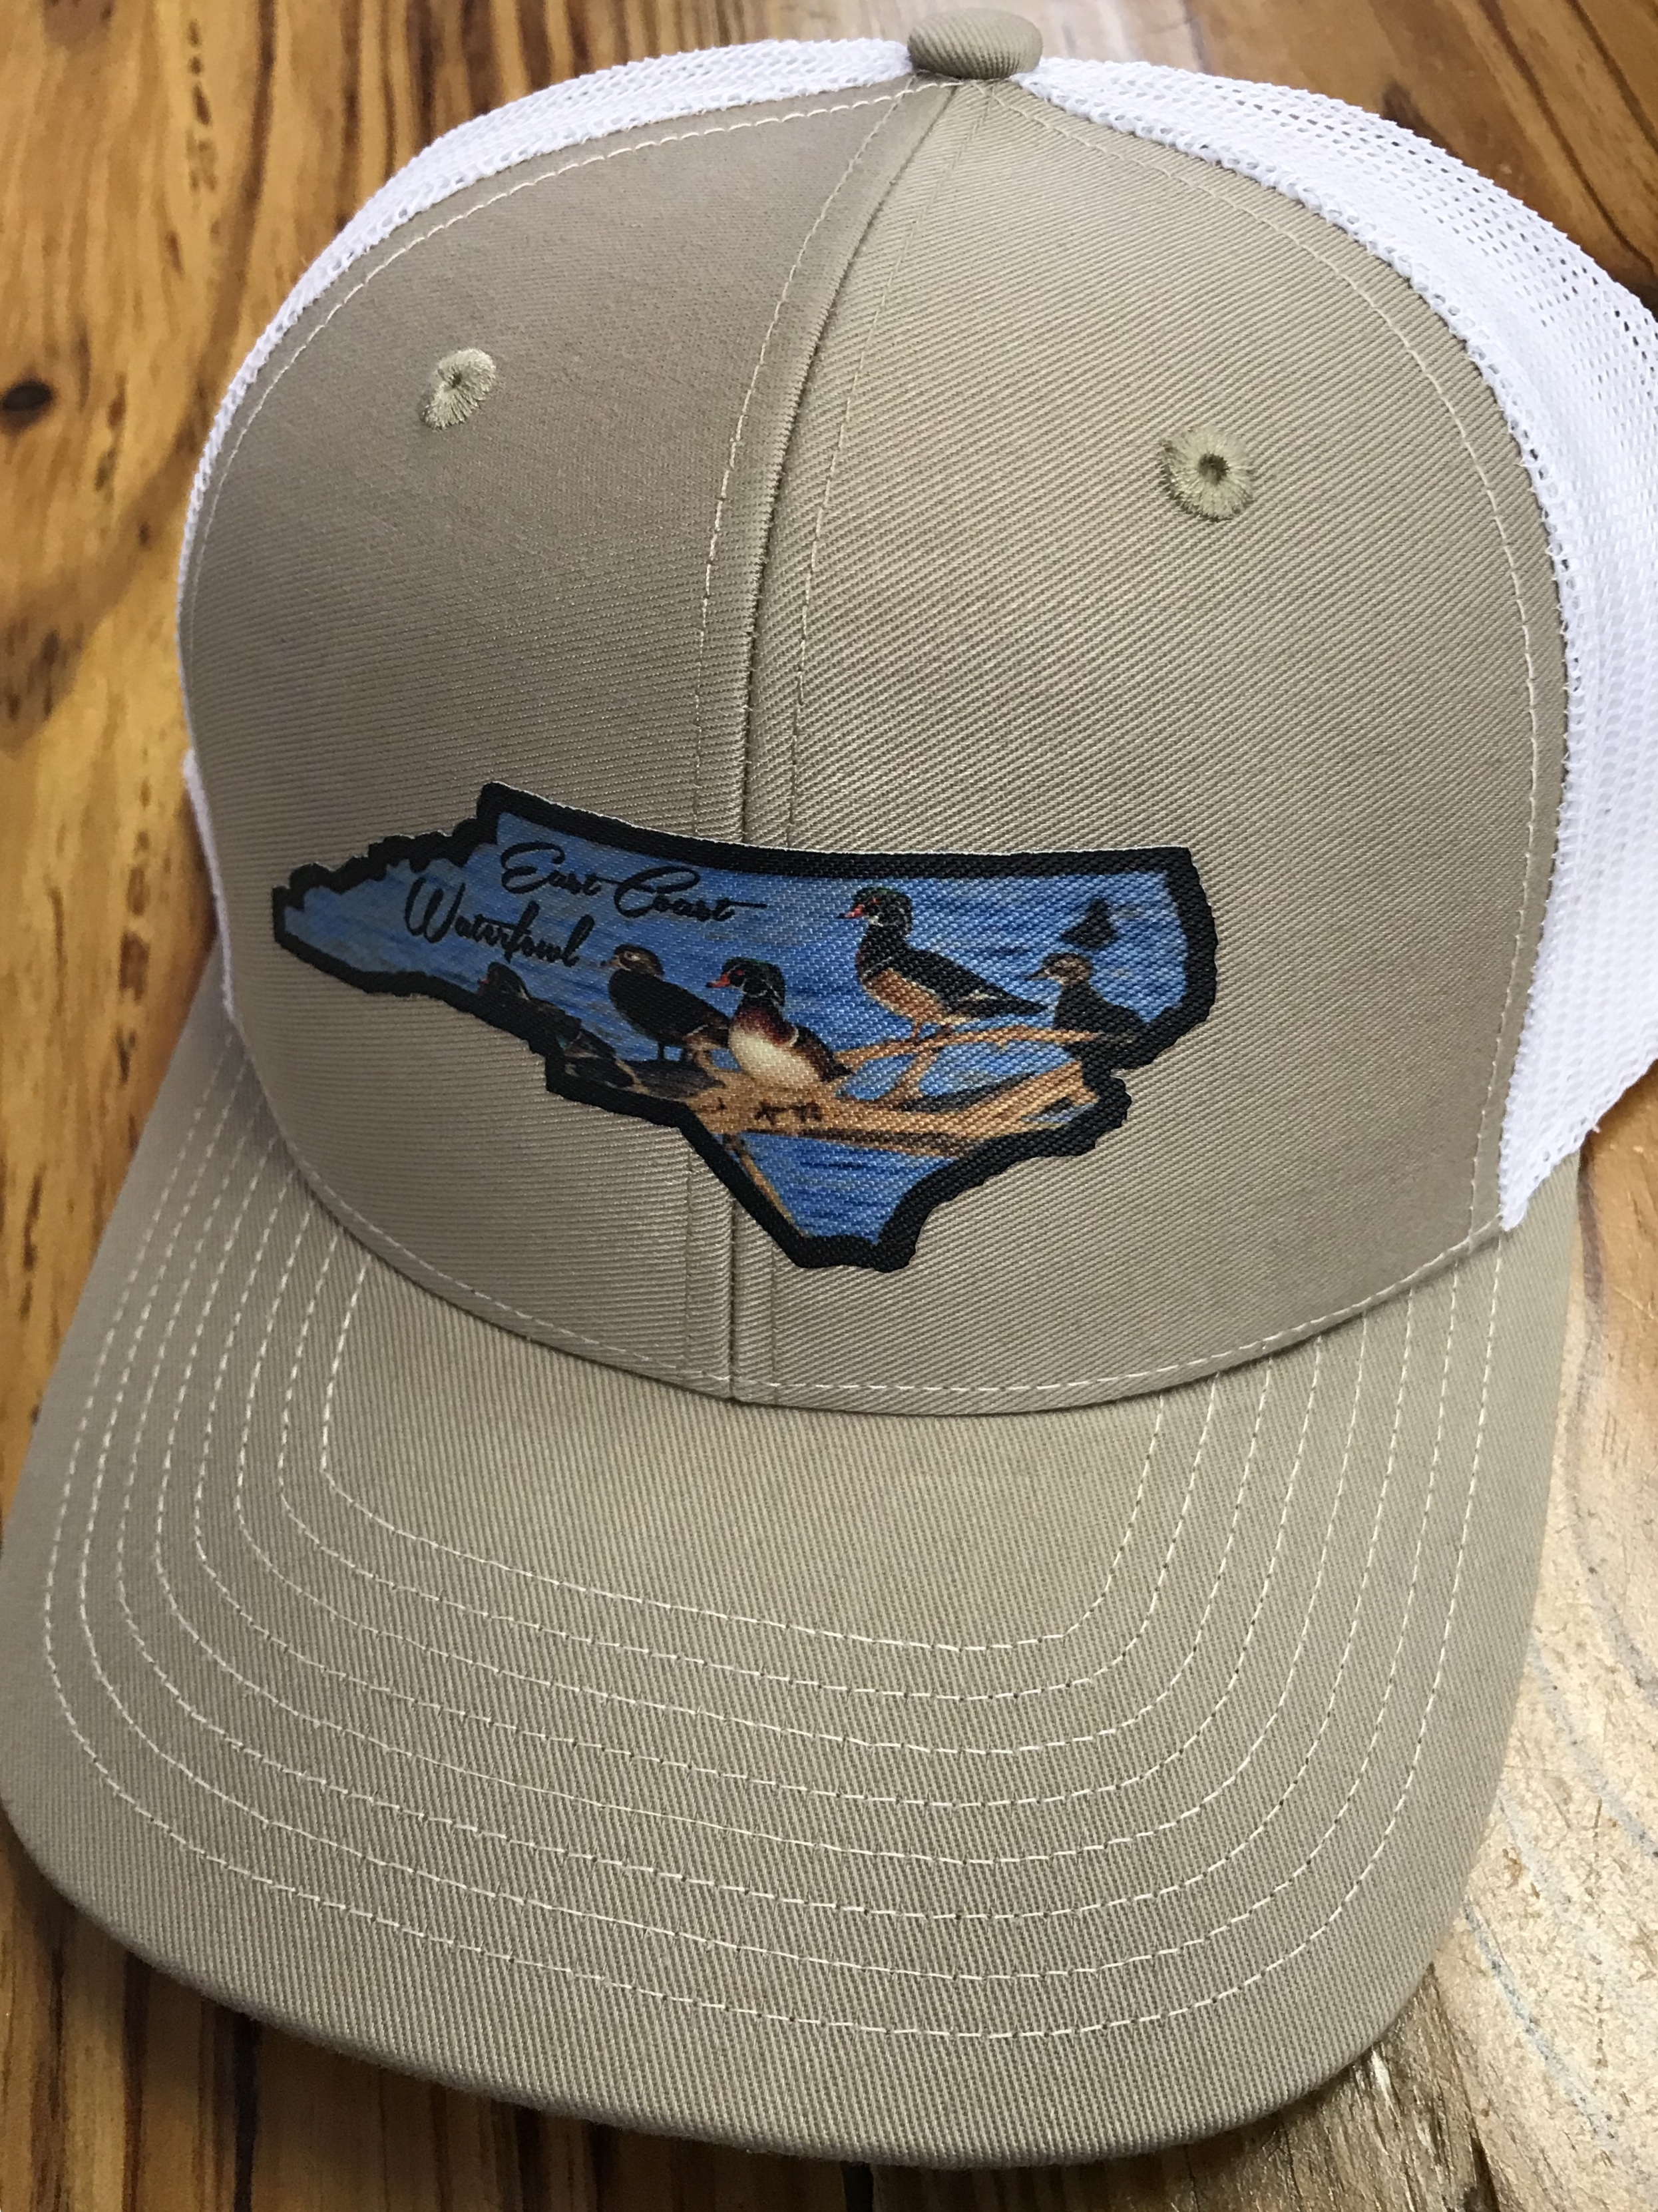 ff831d1bf95 East Coast Waterfowl Wood Duck State Patch Trucker Hat Khaki White East  Coast Waterfowl